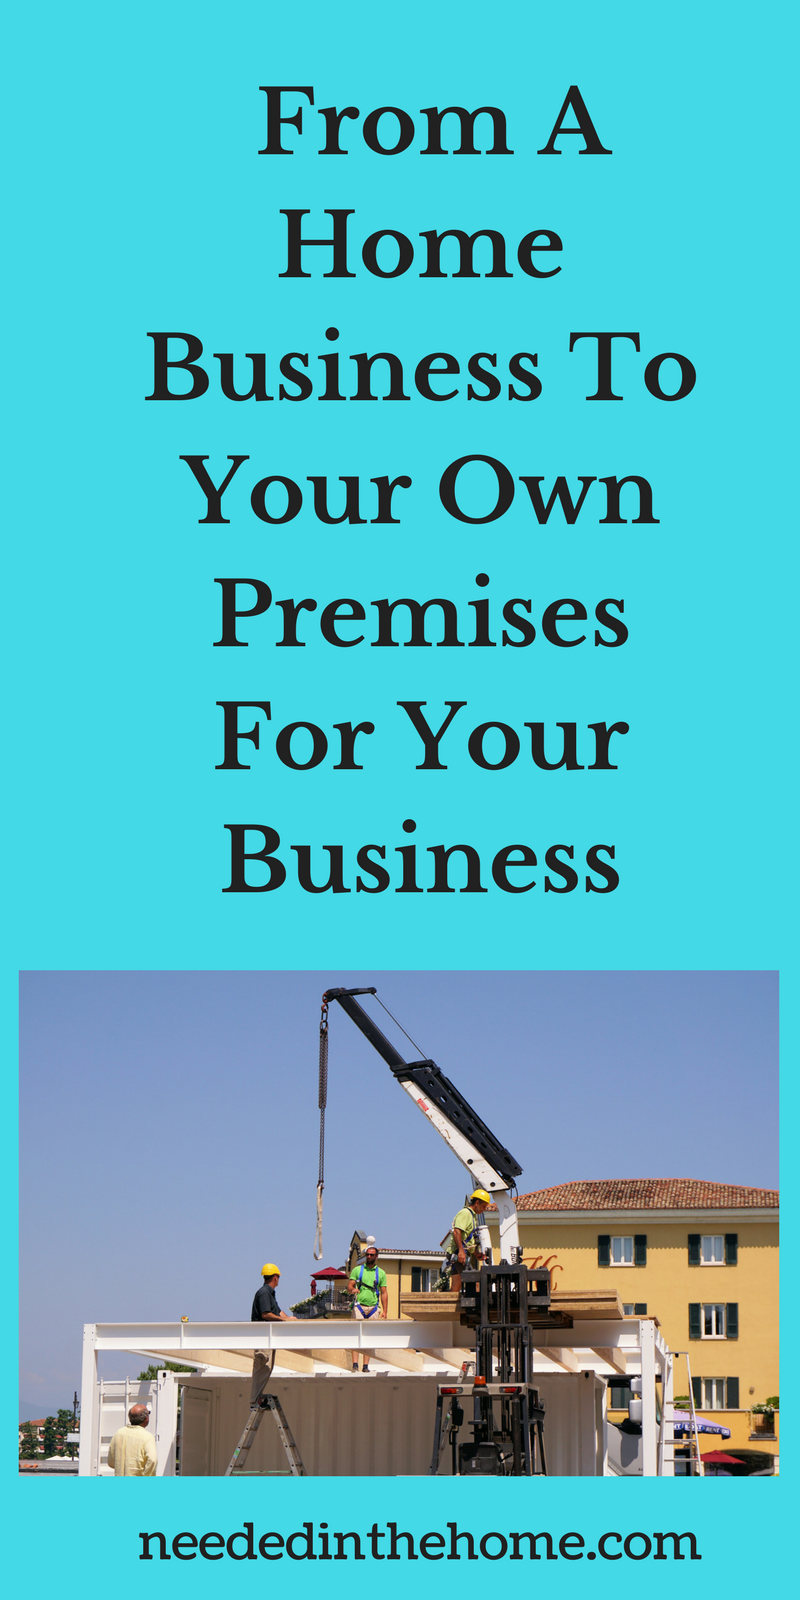 construction crew building an office building From A Home Business To Your Own Premises For Your Business